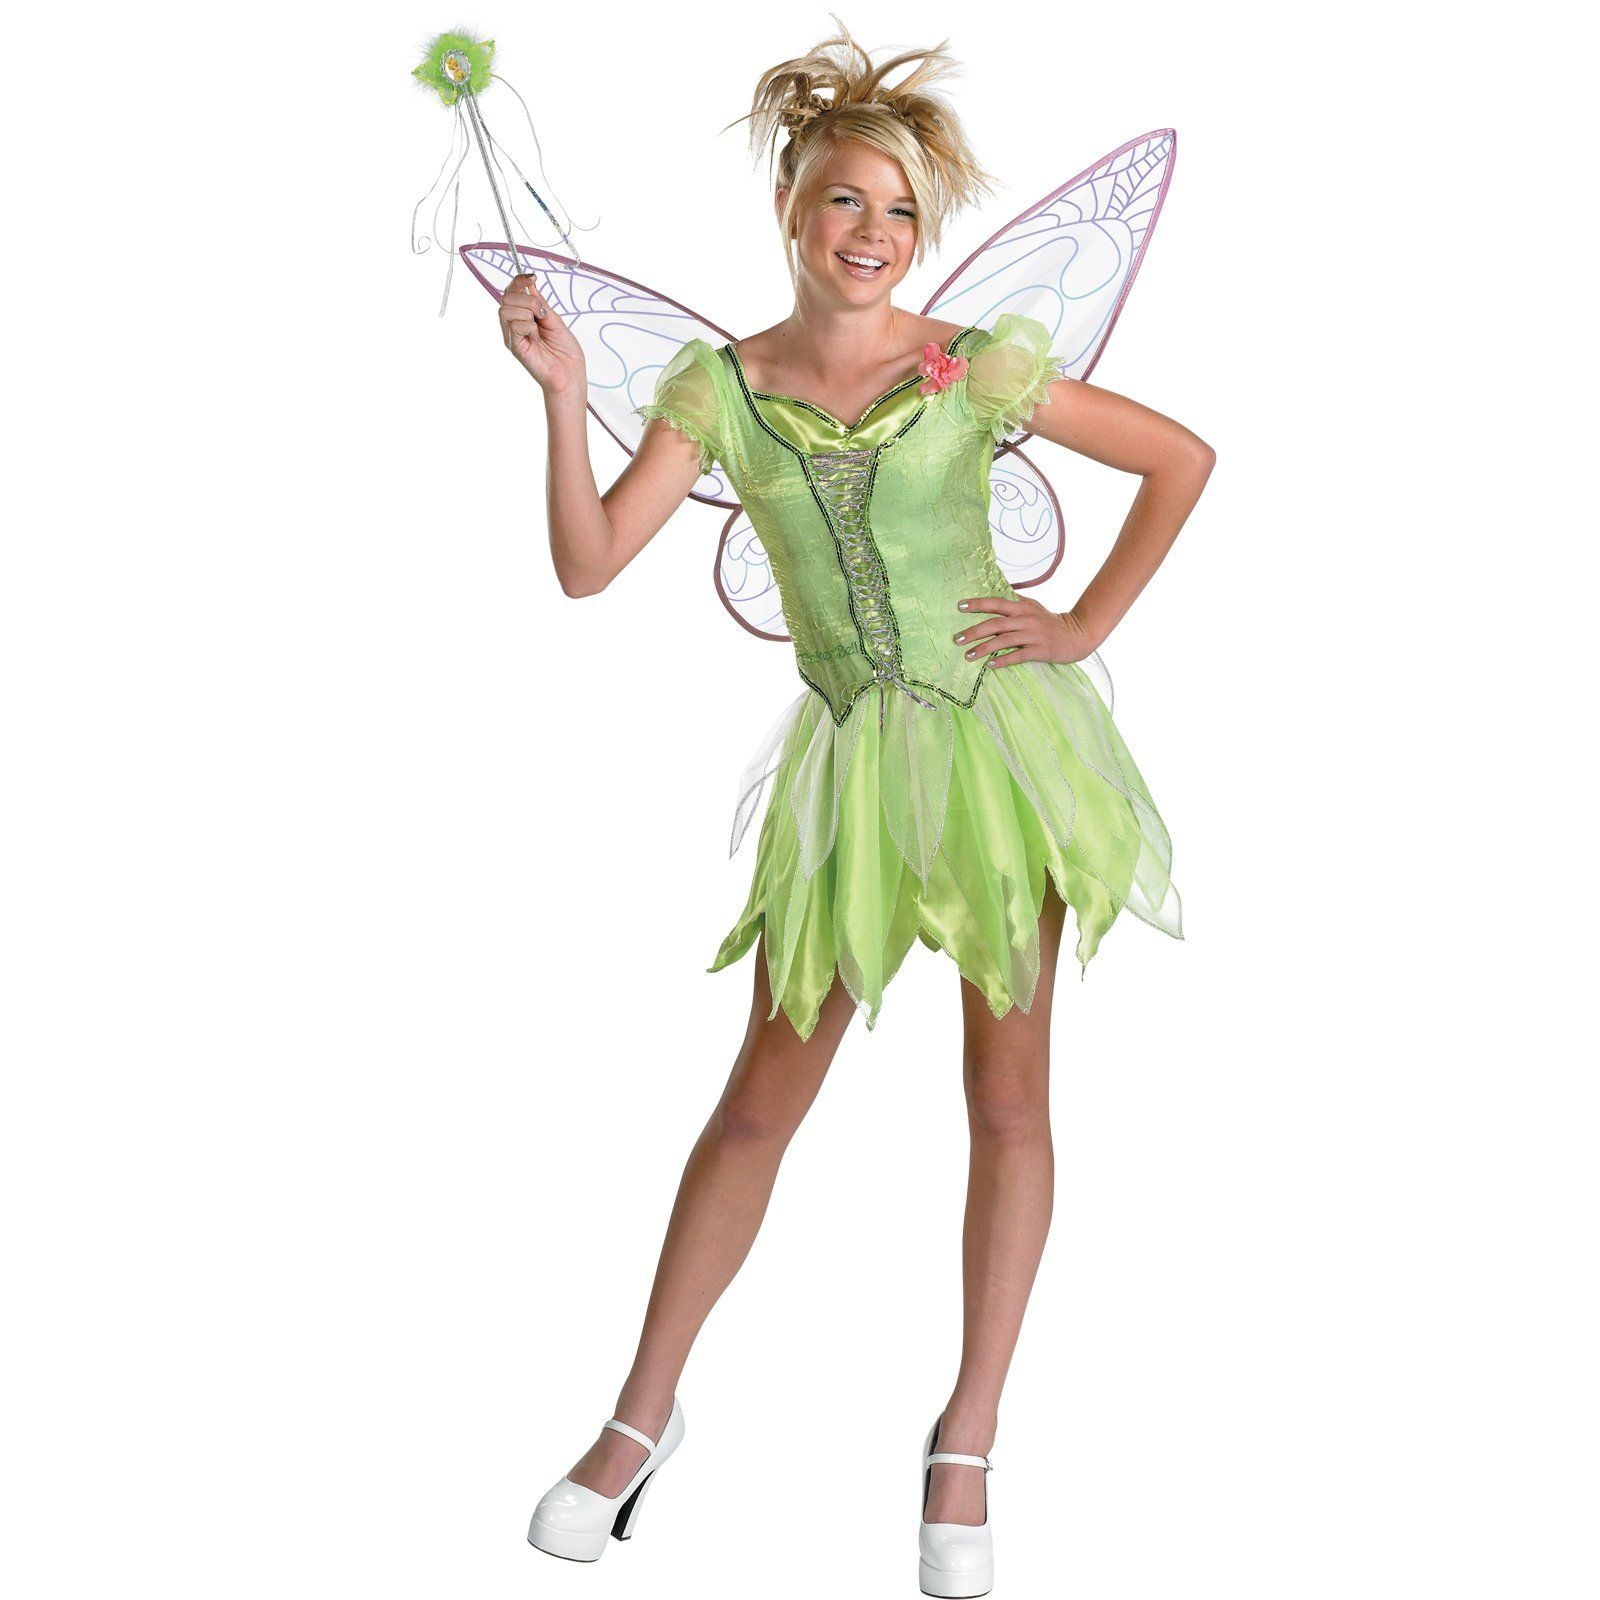 Find great deals on eBay for tinkerbell costume. Shop with confidence.